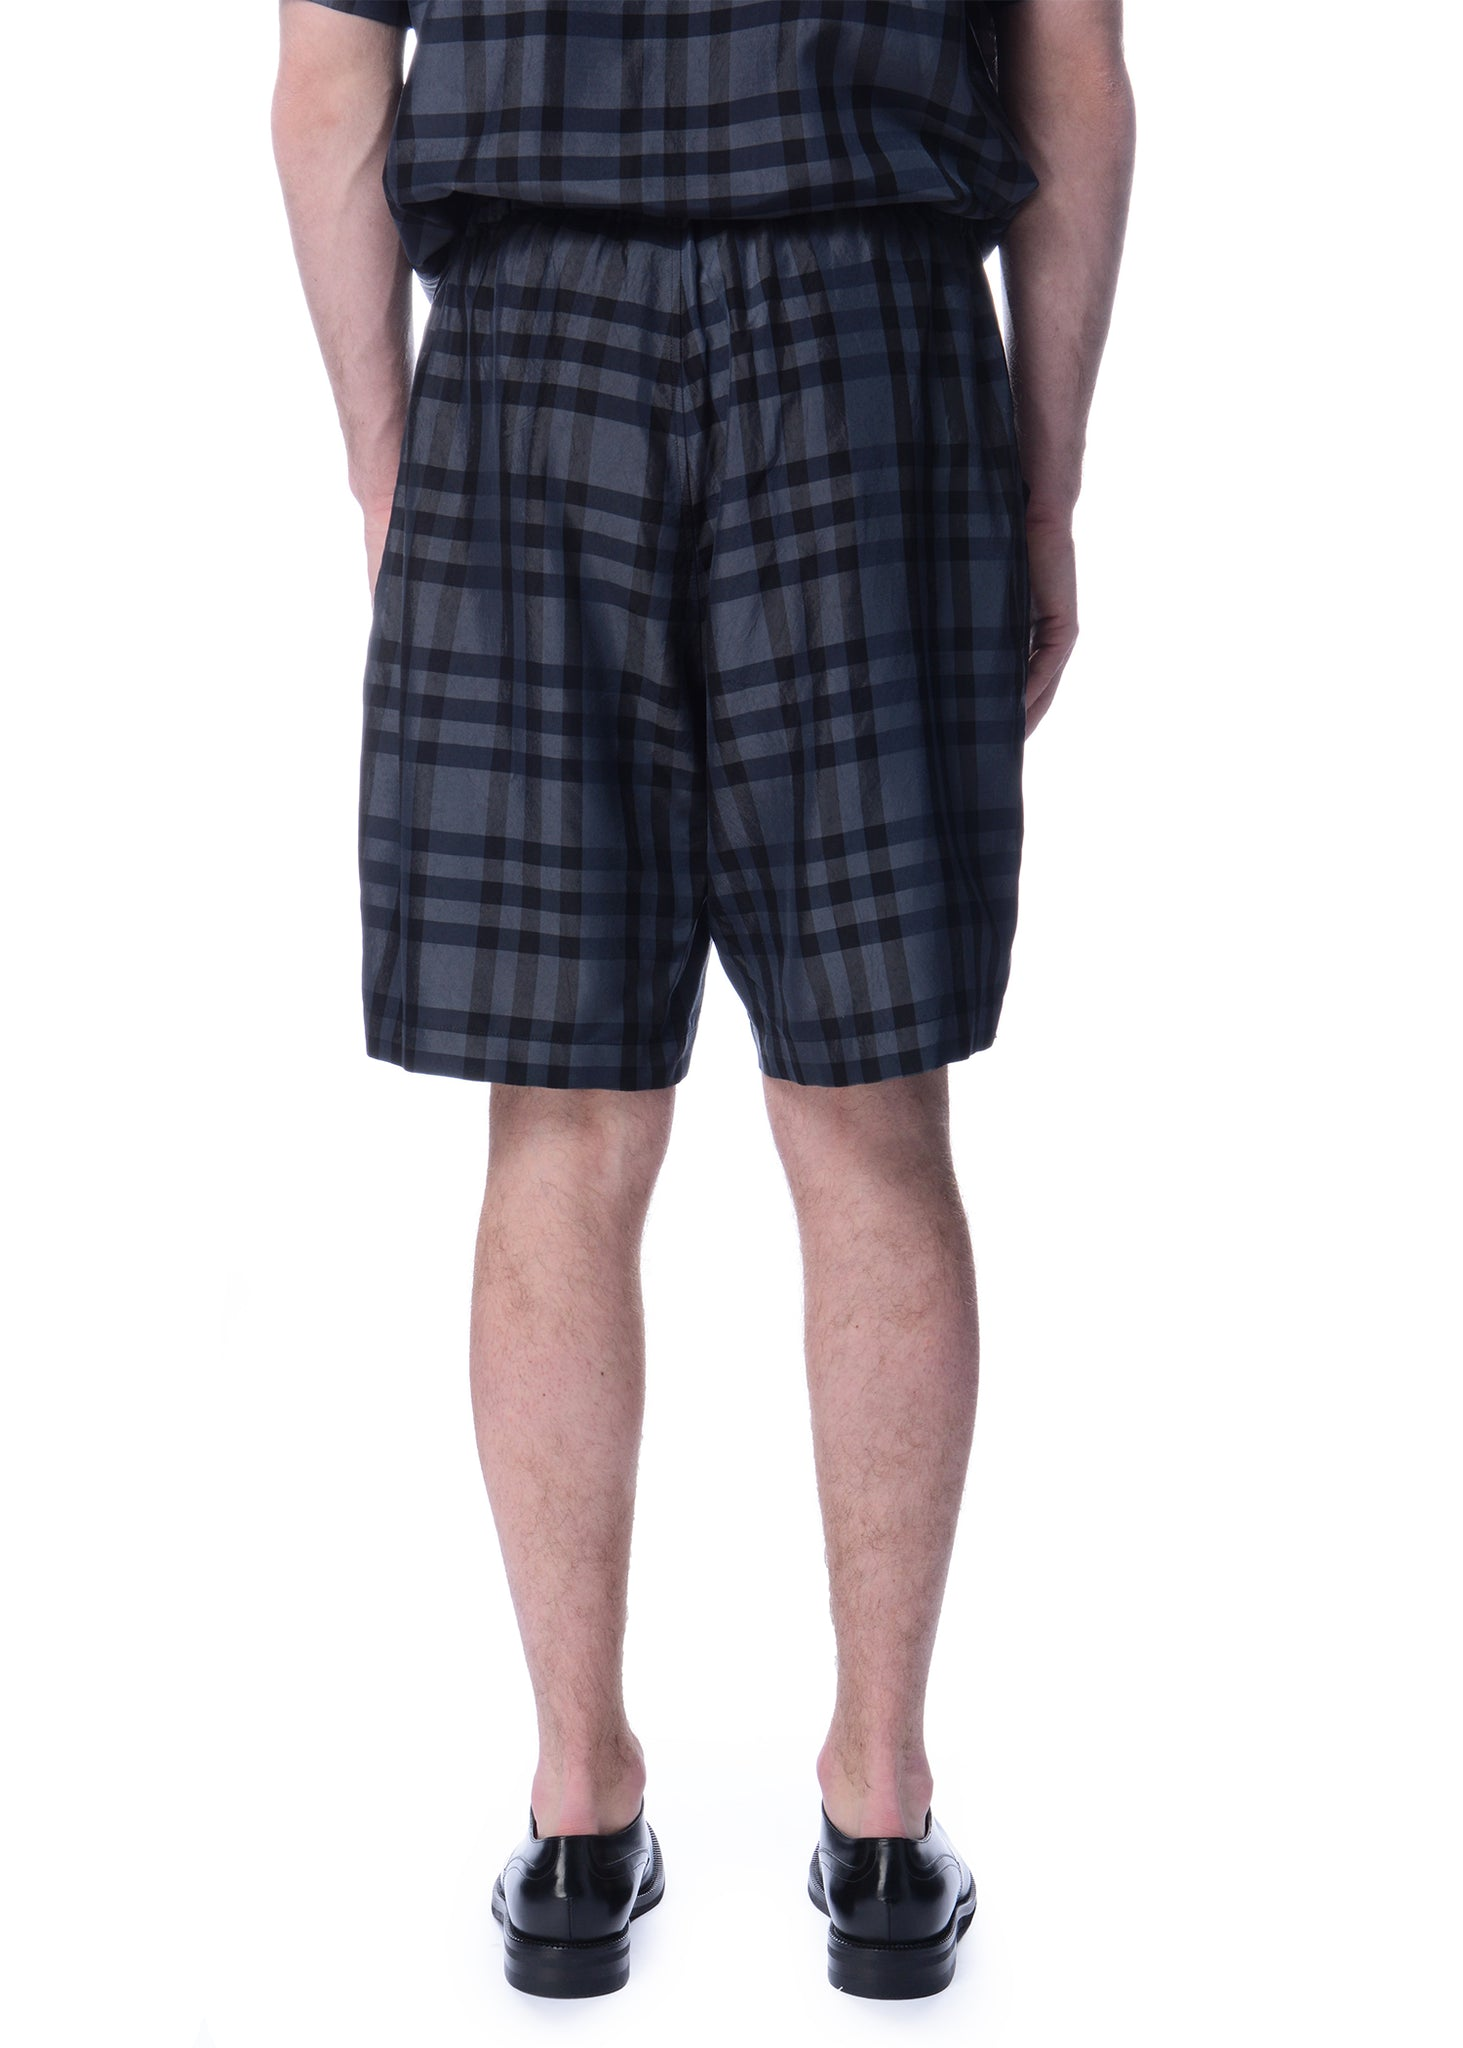 Short Ample Carreauté Charcoal|Charcoal Checkered Relaxed Shorts